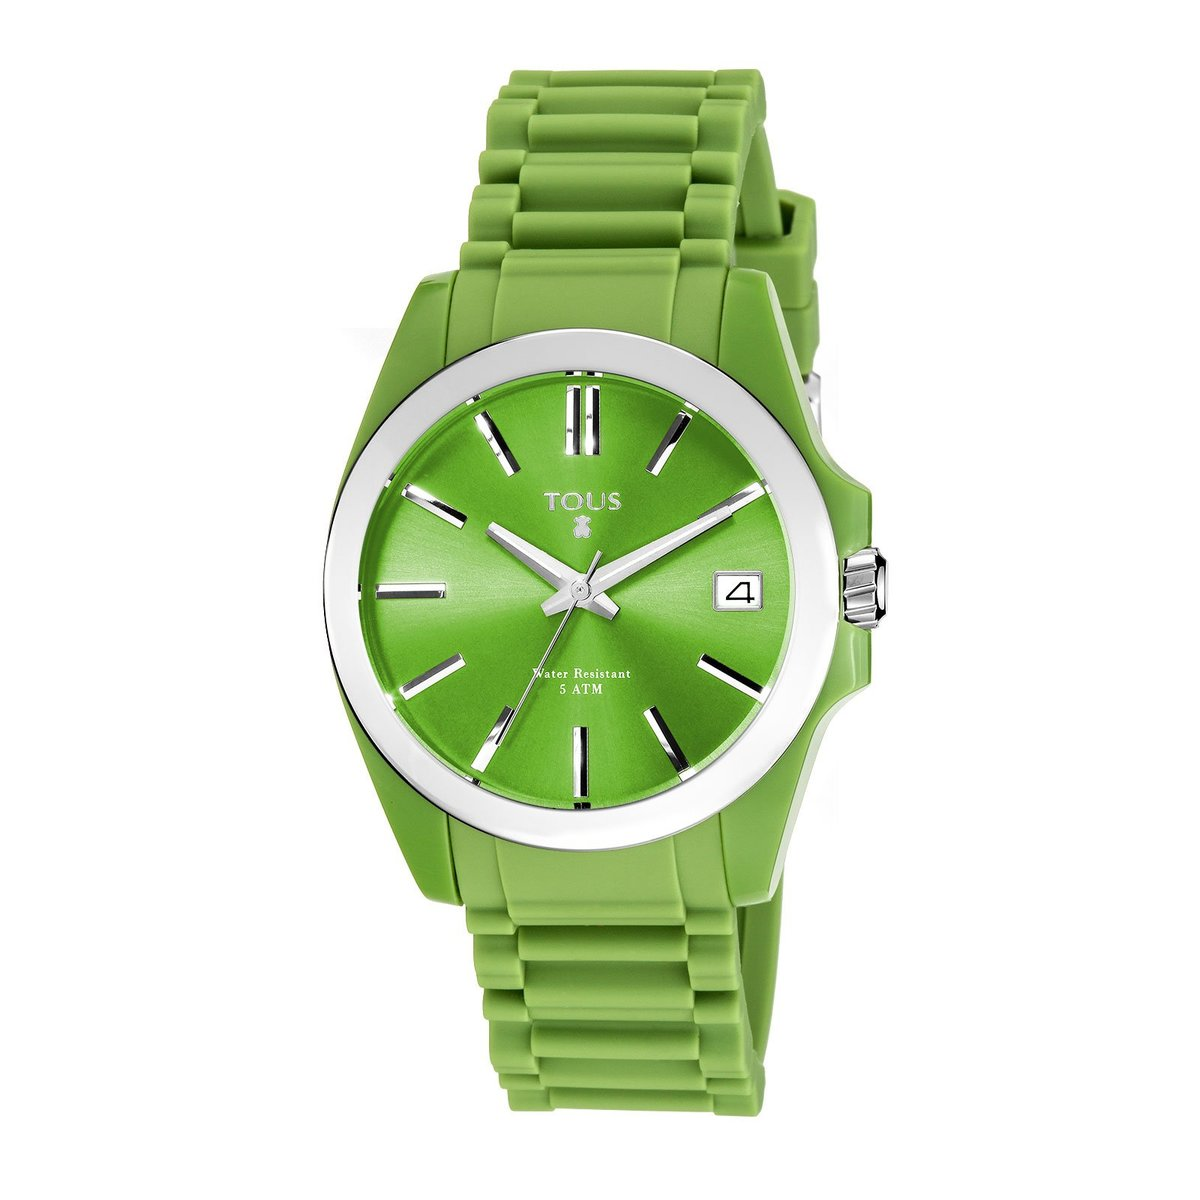 Steel Drive Fun Watch with green Silicone strap